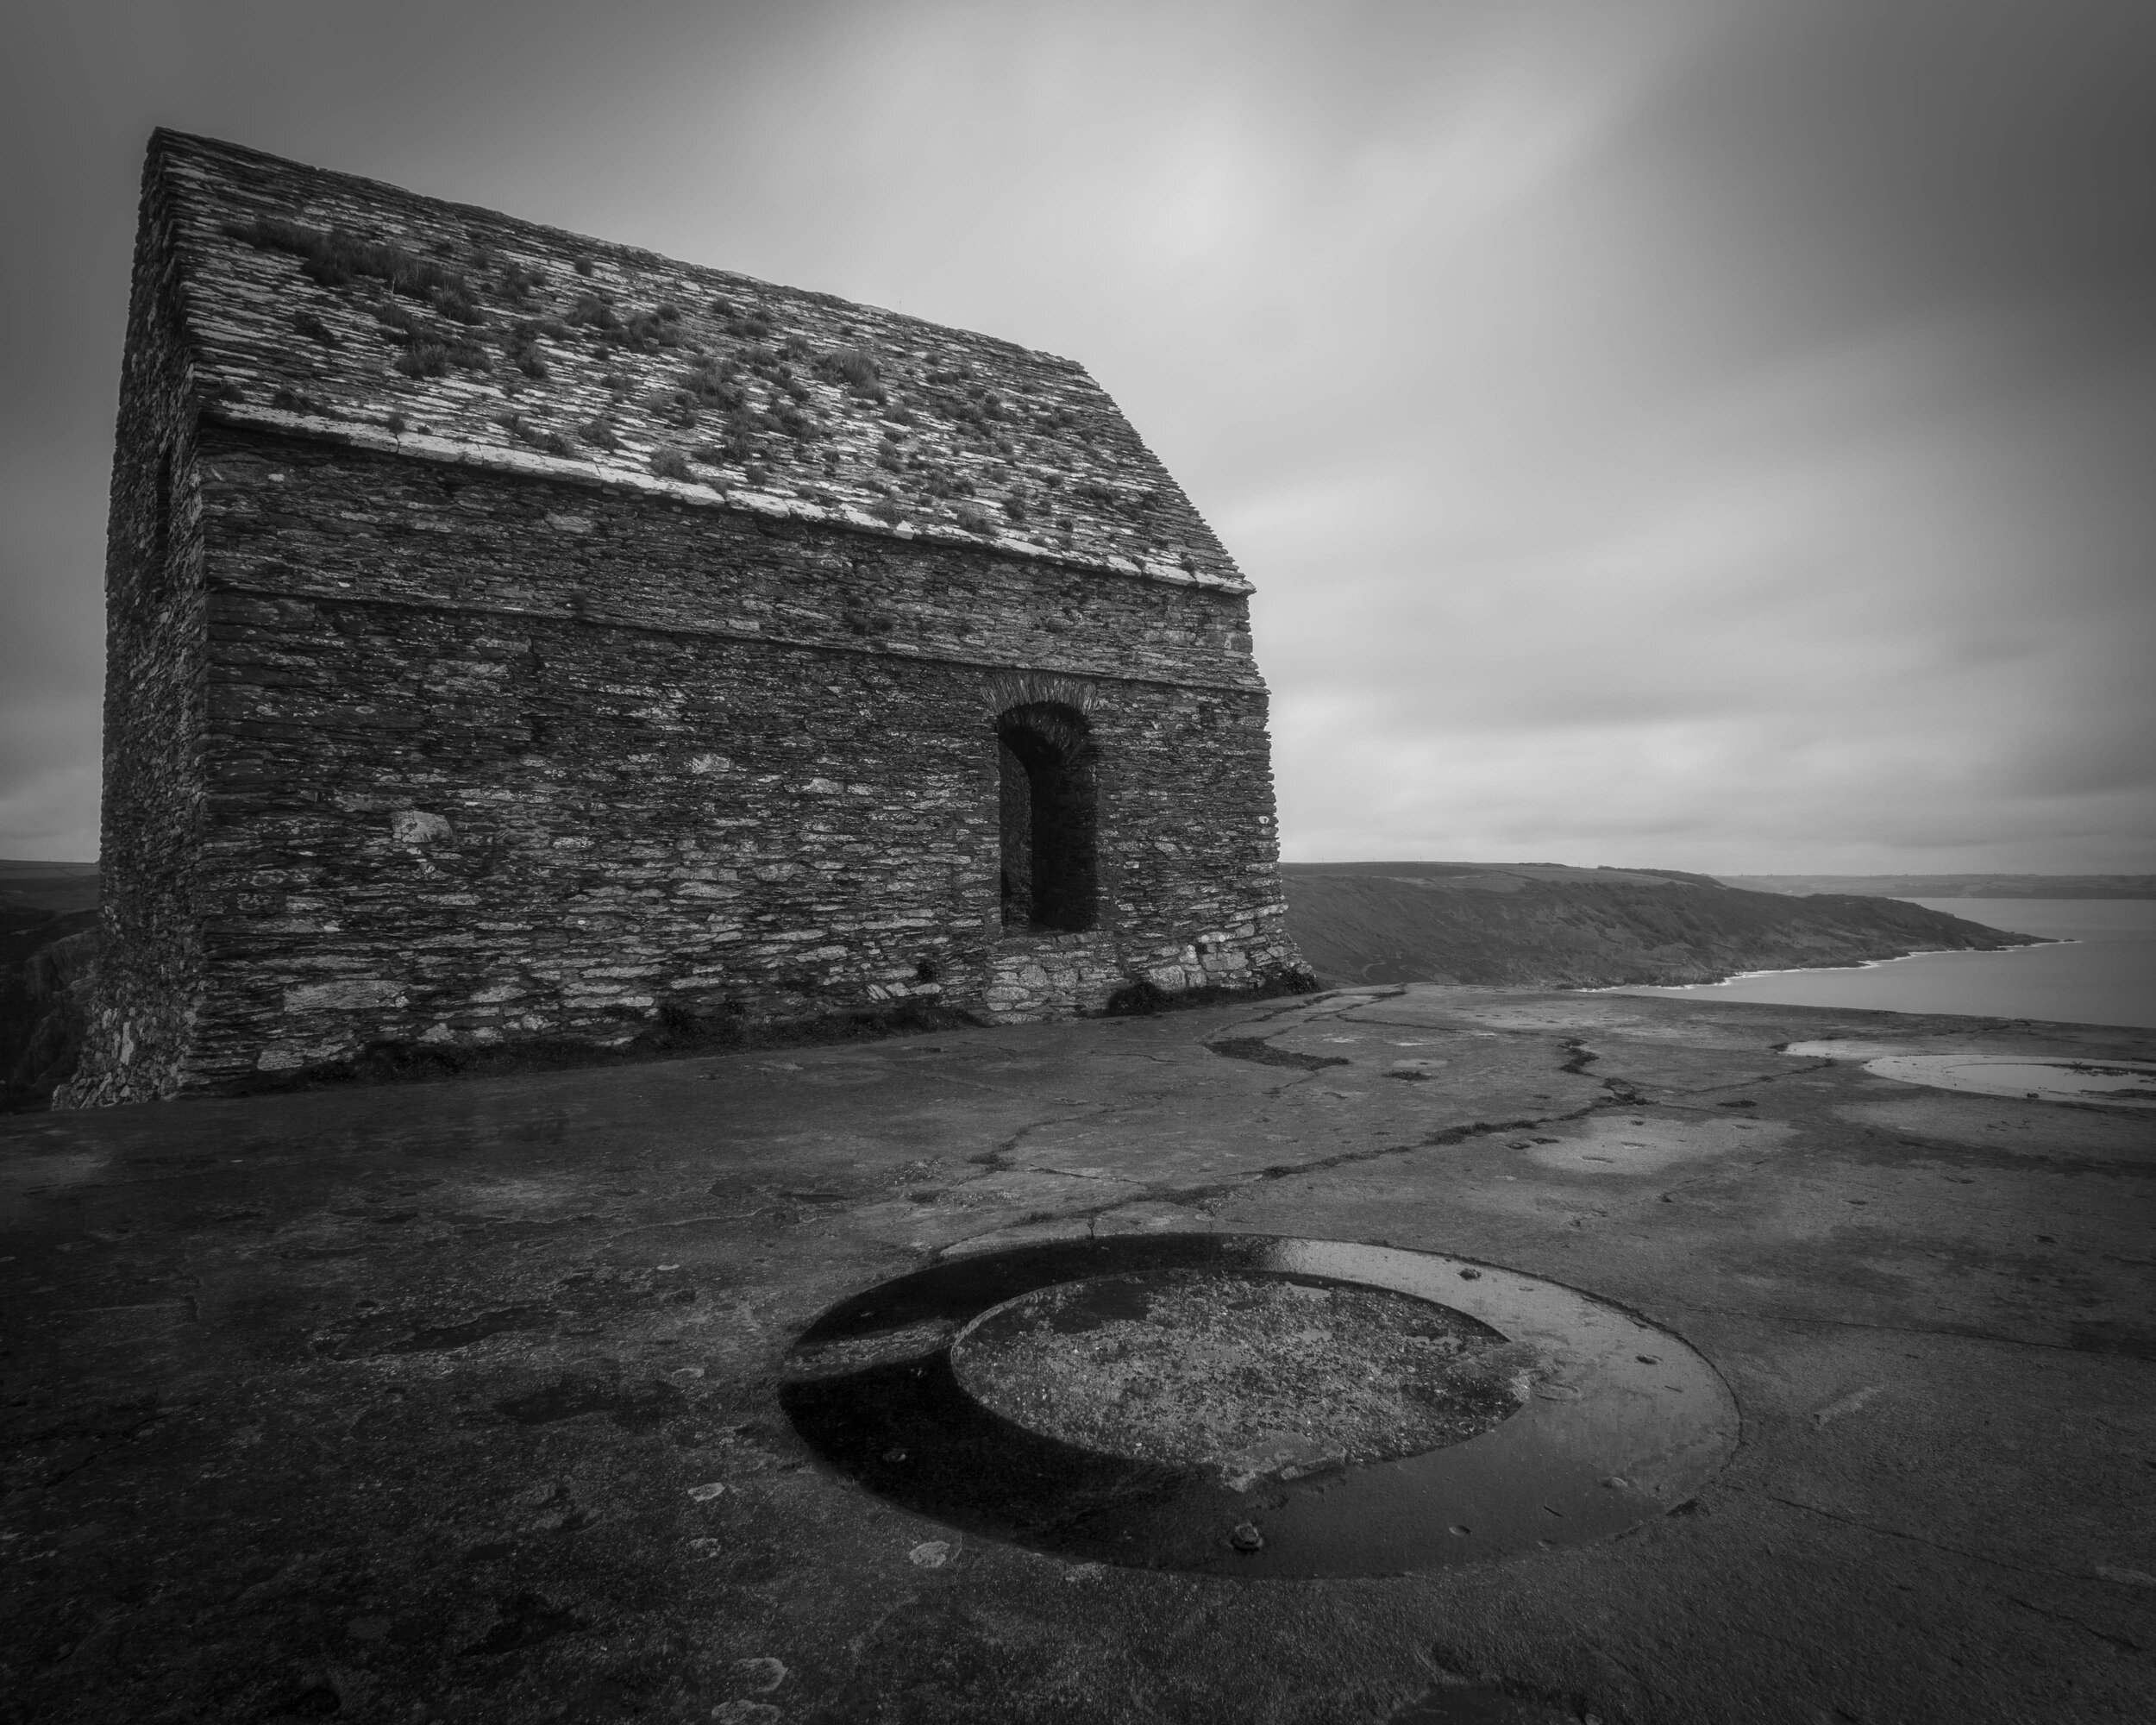 The chapel offers shots from behind back to the headland, not just leading up to